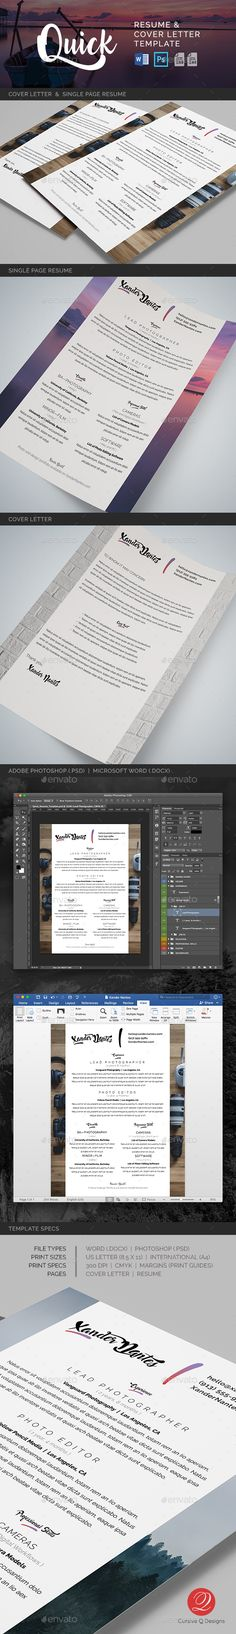 Resume Word Bundle Resume words, Template and Font logo - quick resume